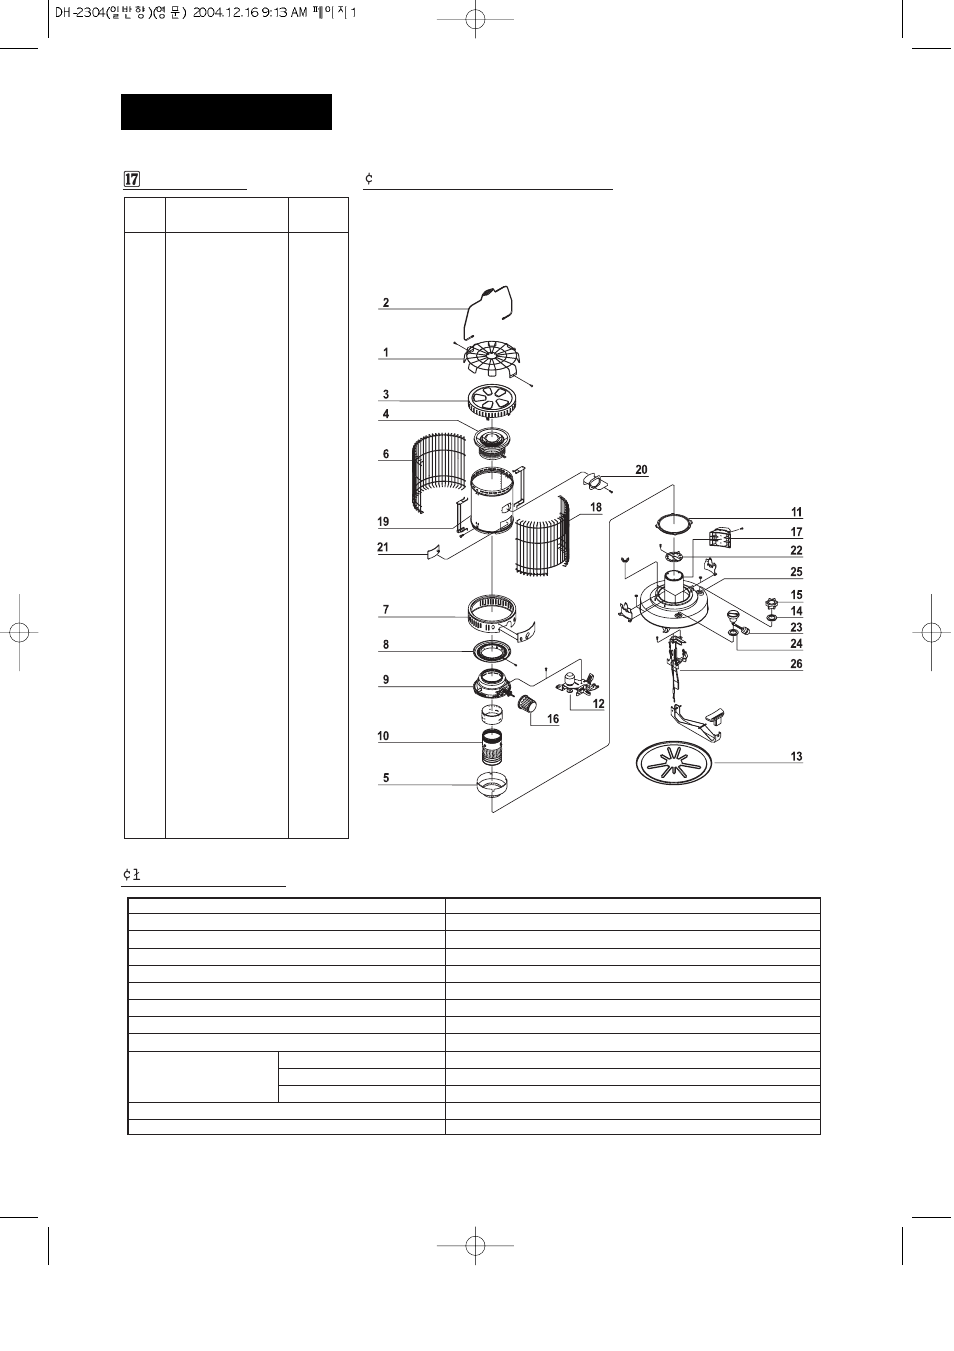 Parts List  U00a2 Exploded Parts Drawing   U0141 Specifications